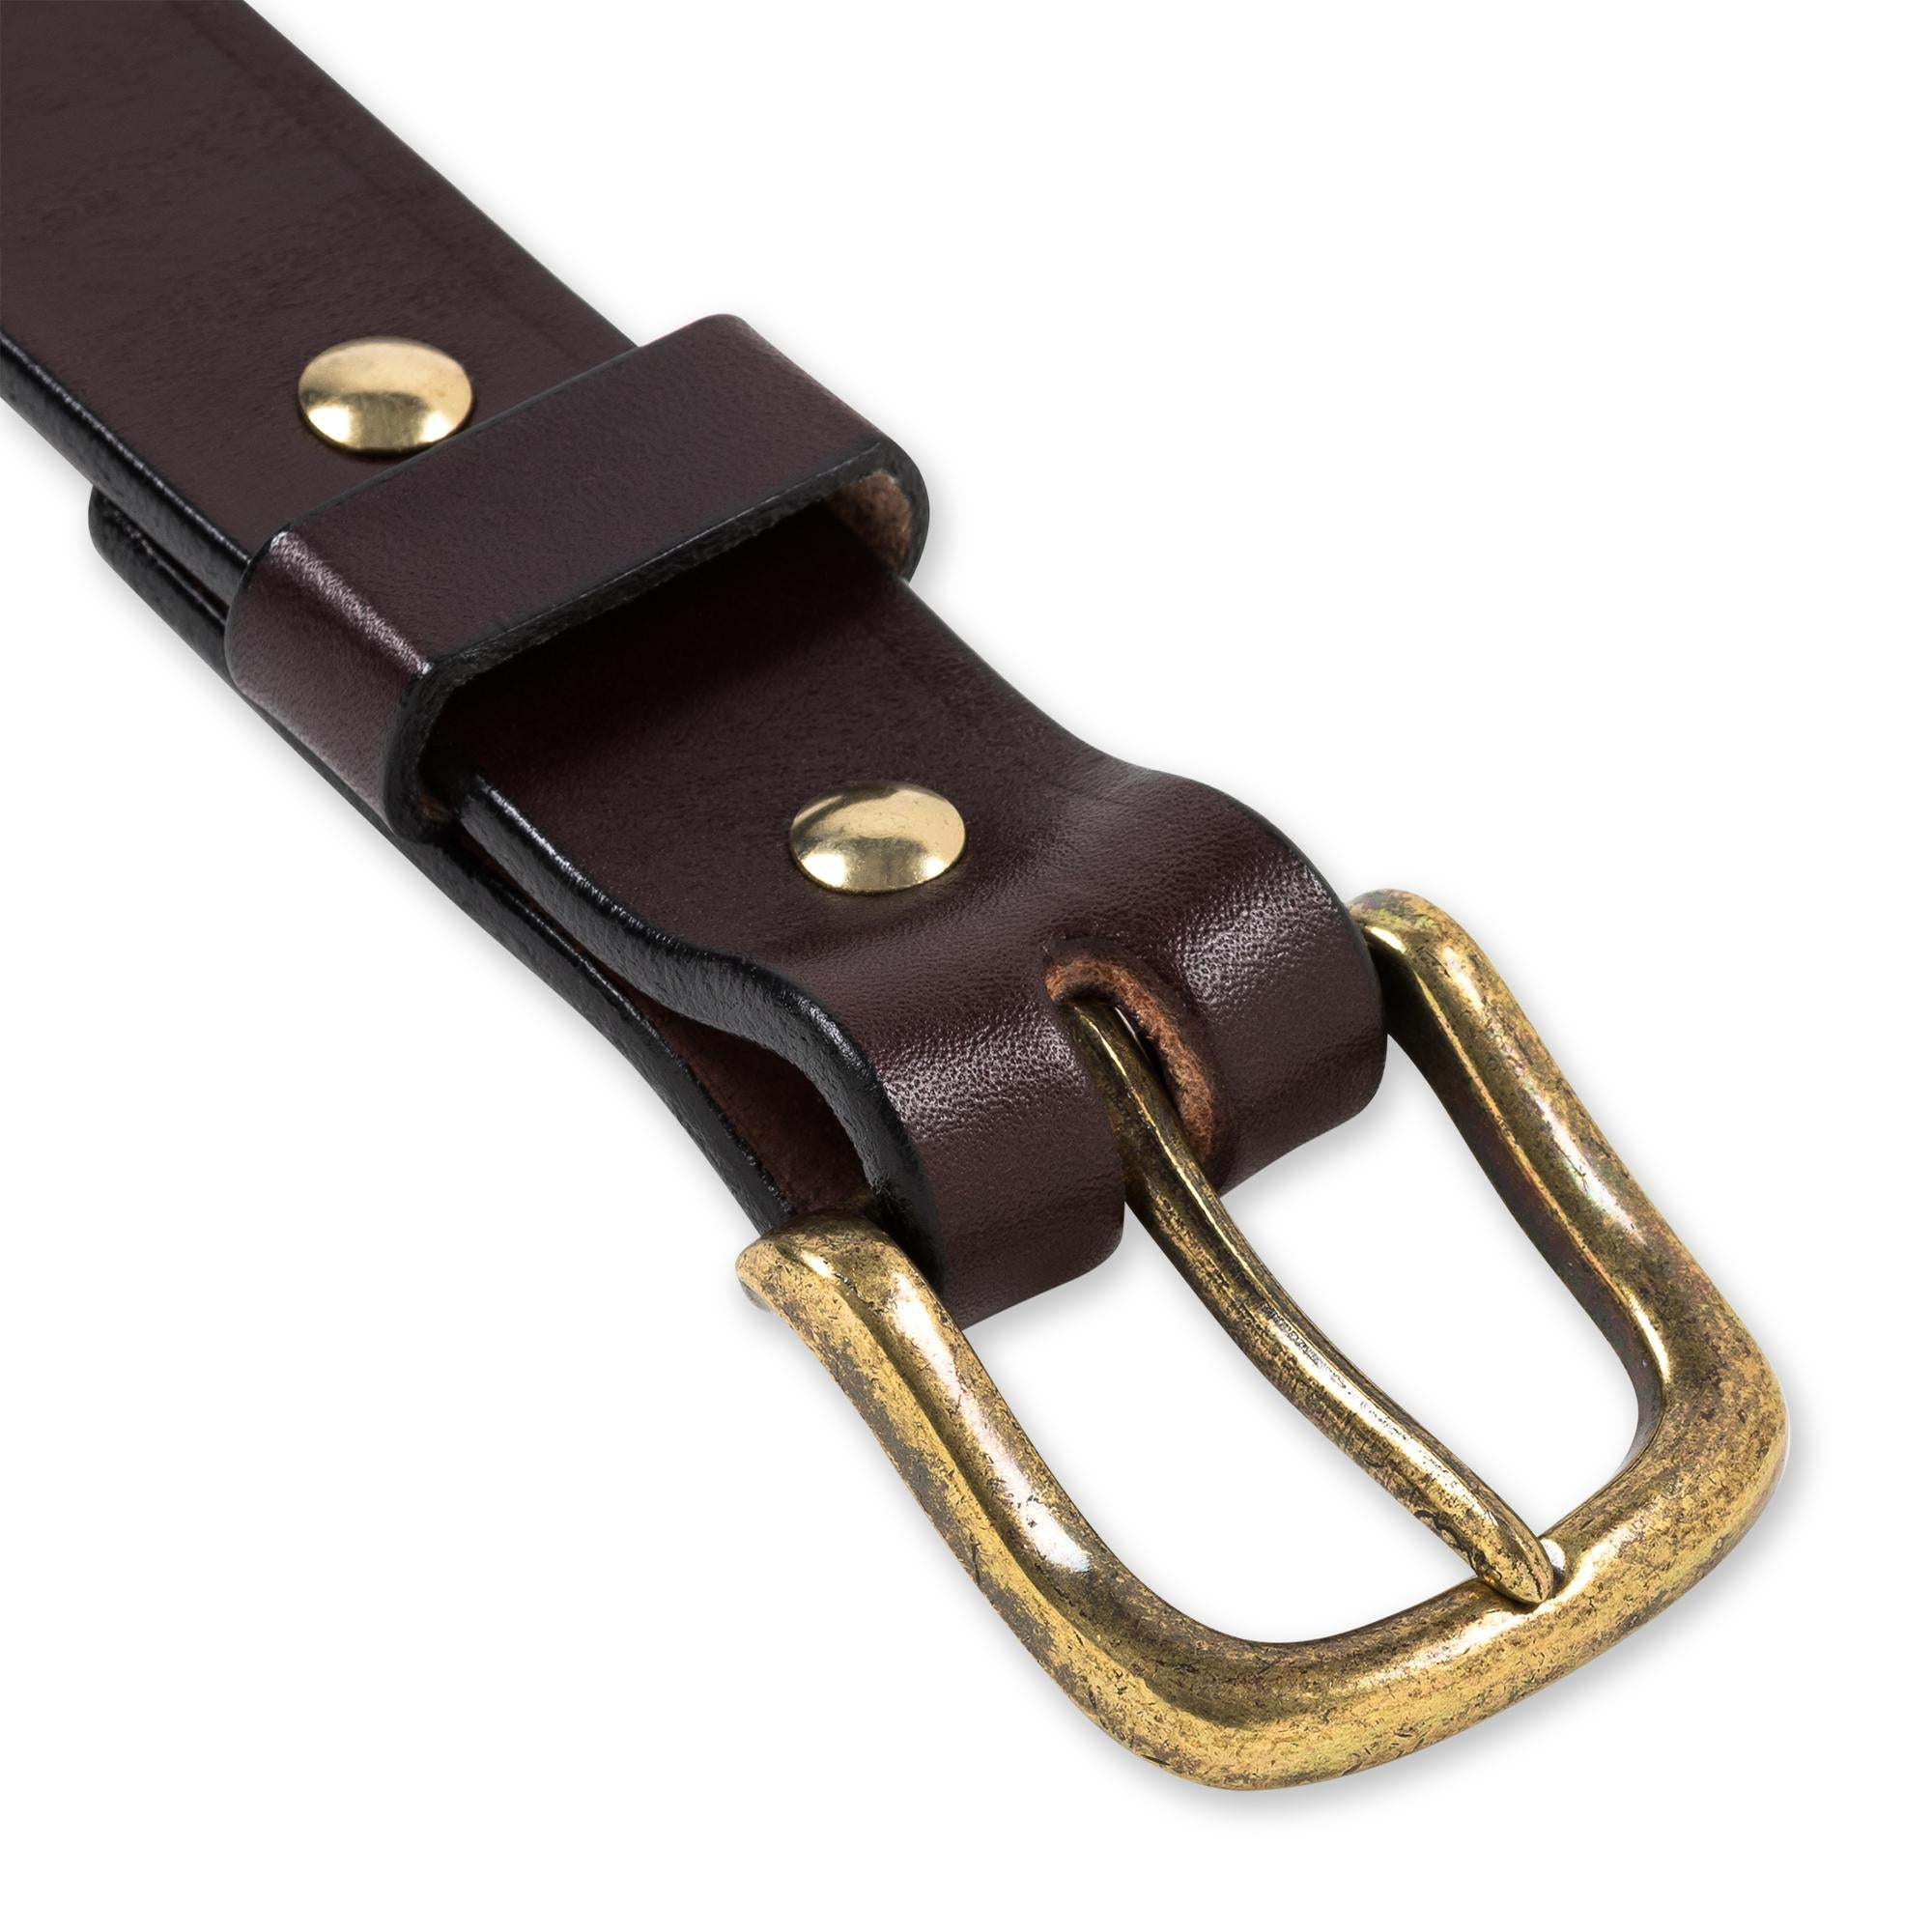 Everyday Belt in Chocolate Belt - Blake Goods - English Bridle Leather Belt